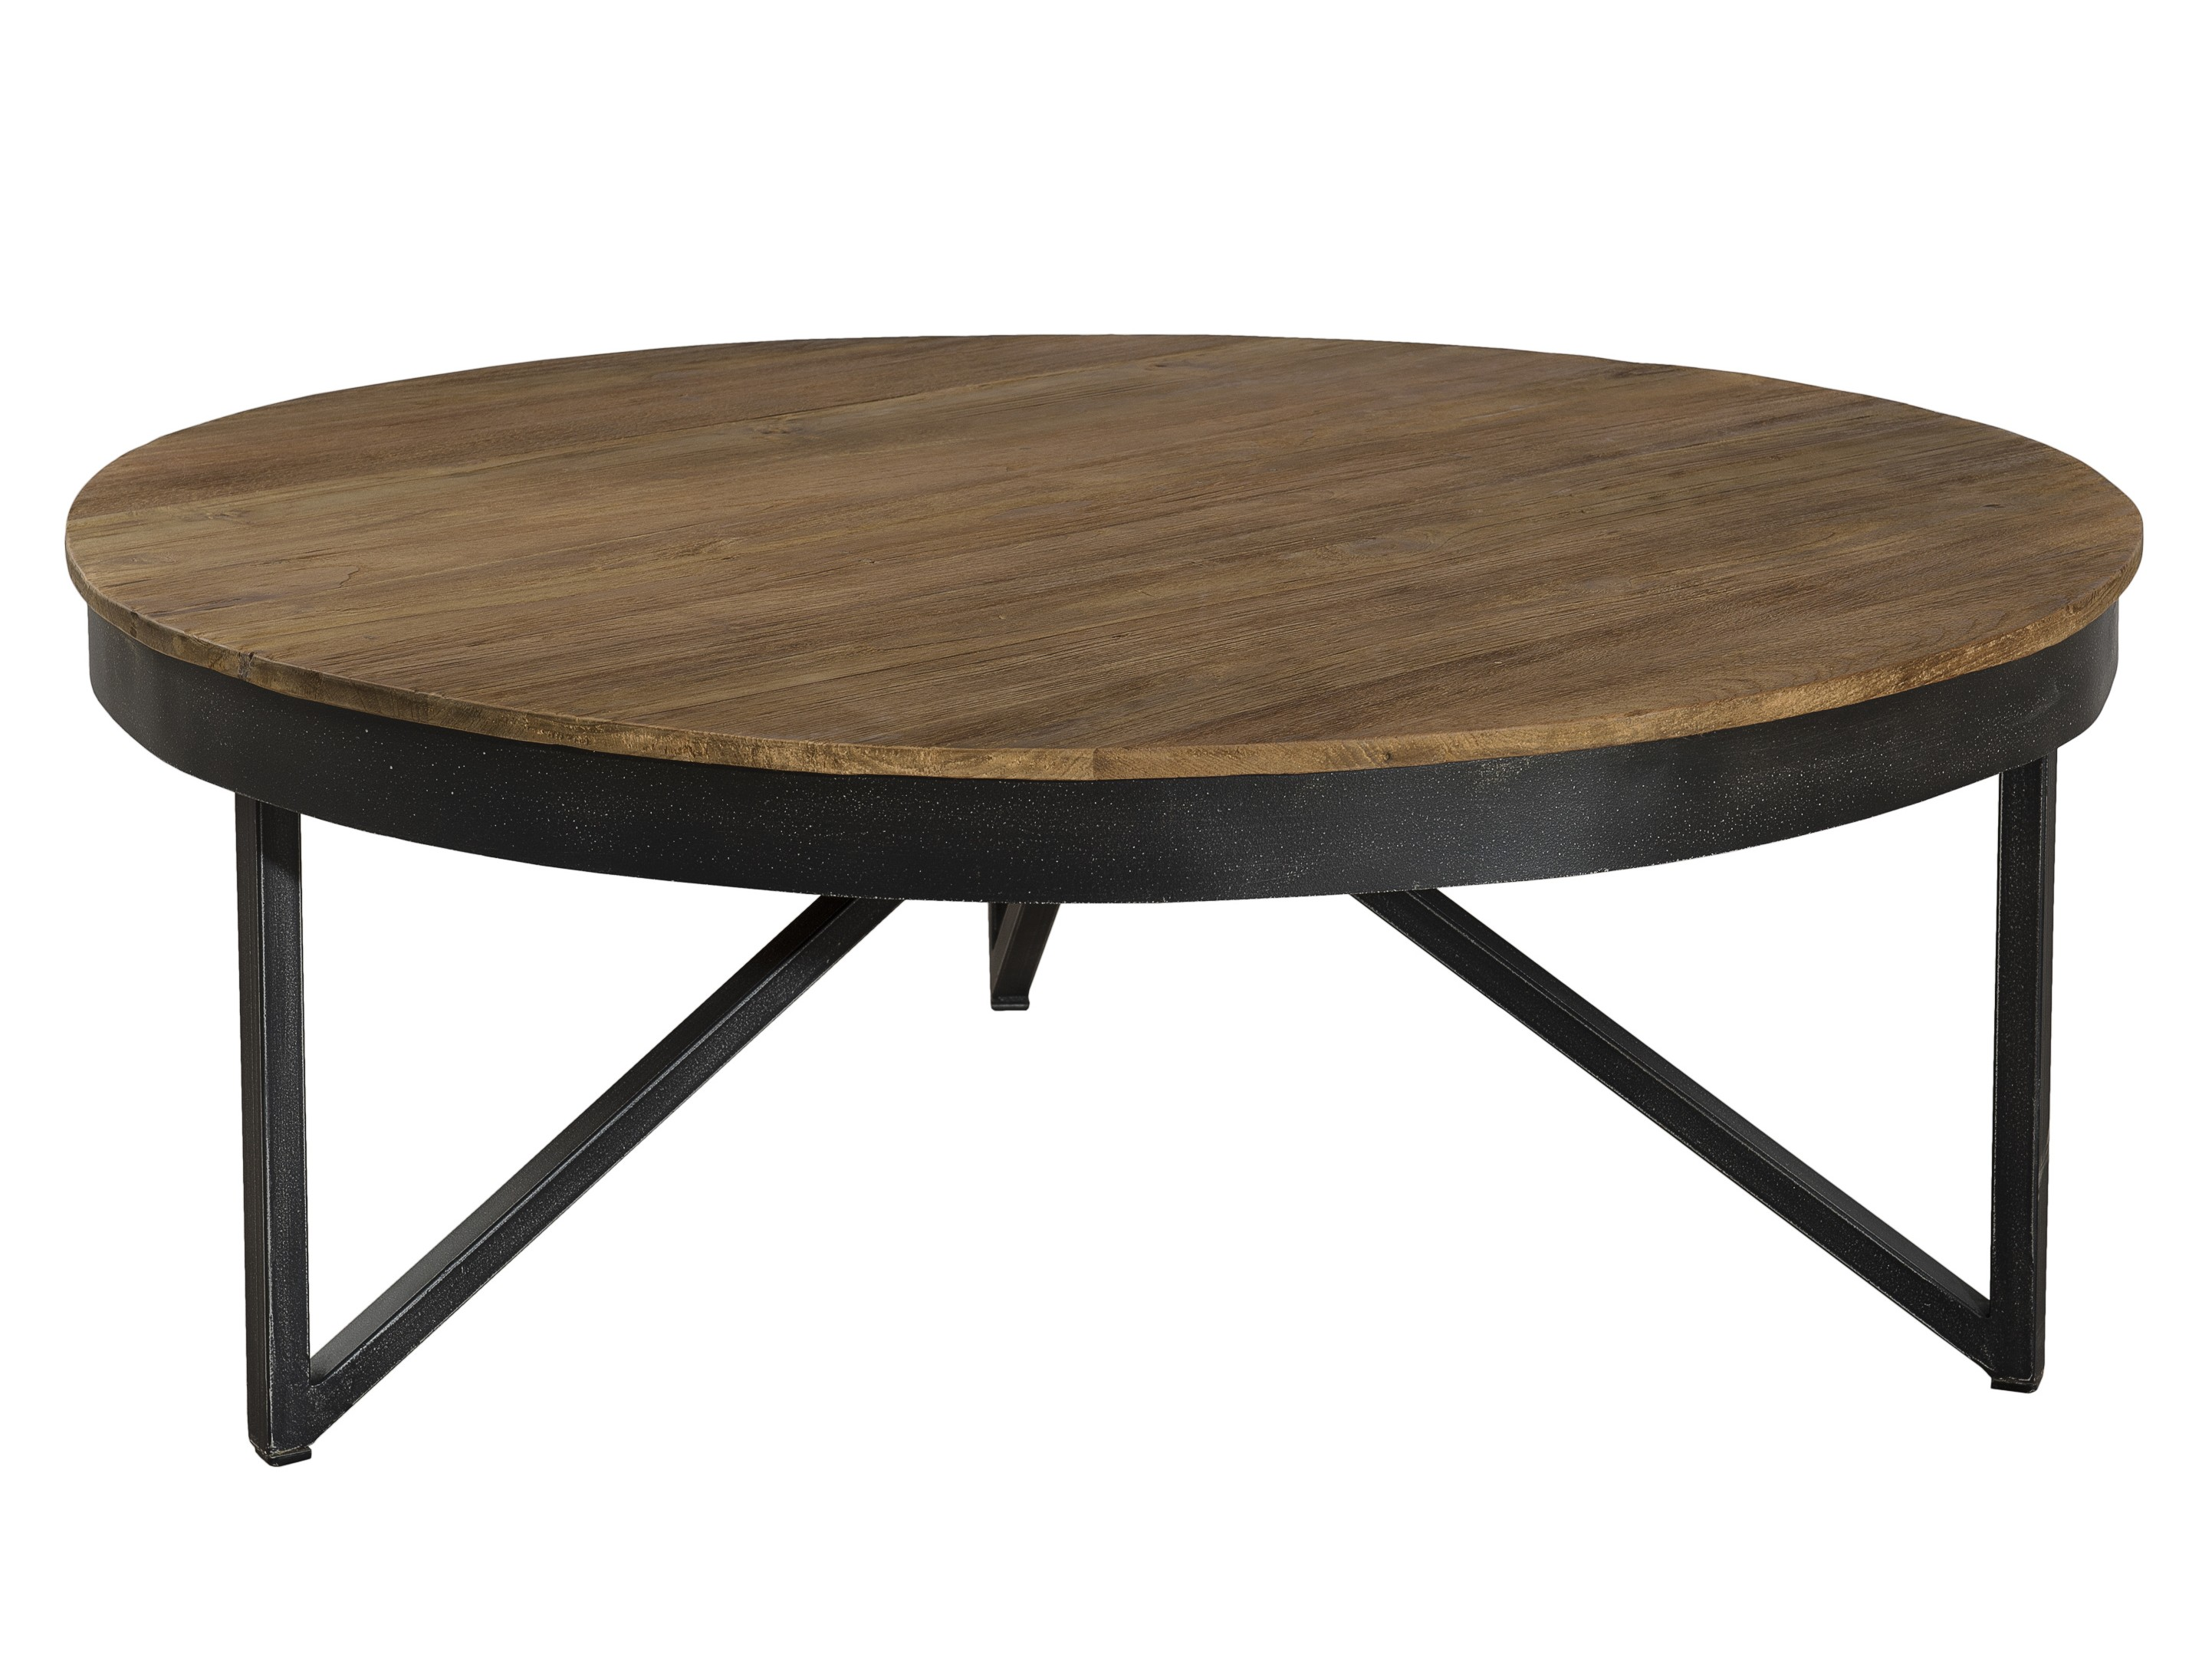 table basse ronde bois de teck recycl m tal noir grand mod le swing tables basses pier import